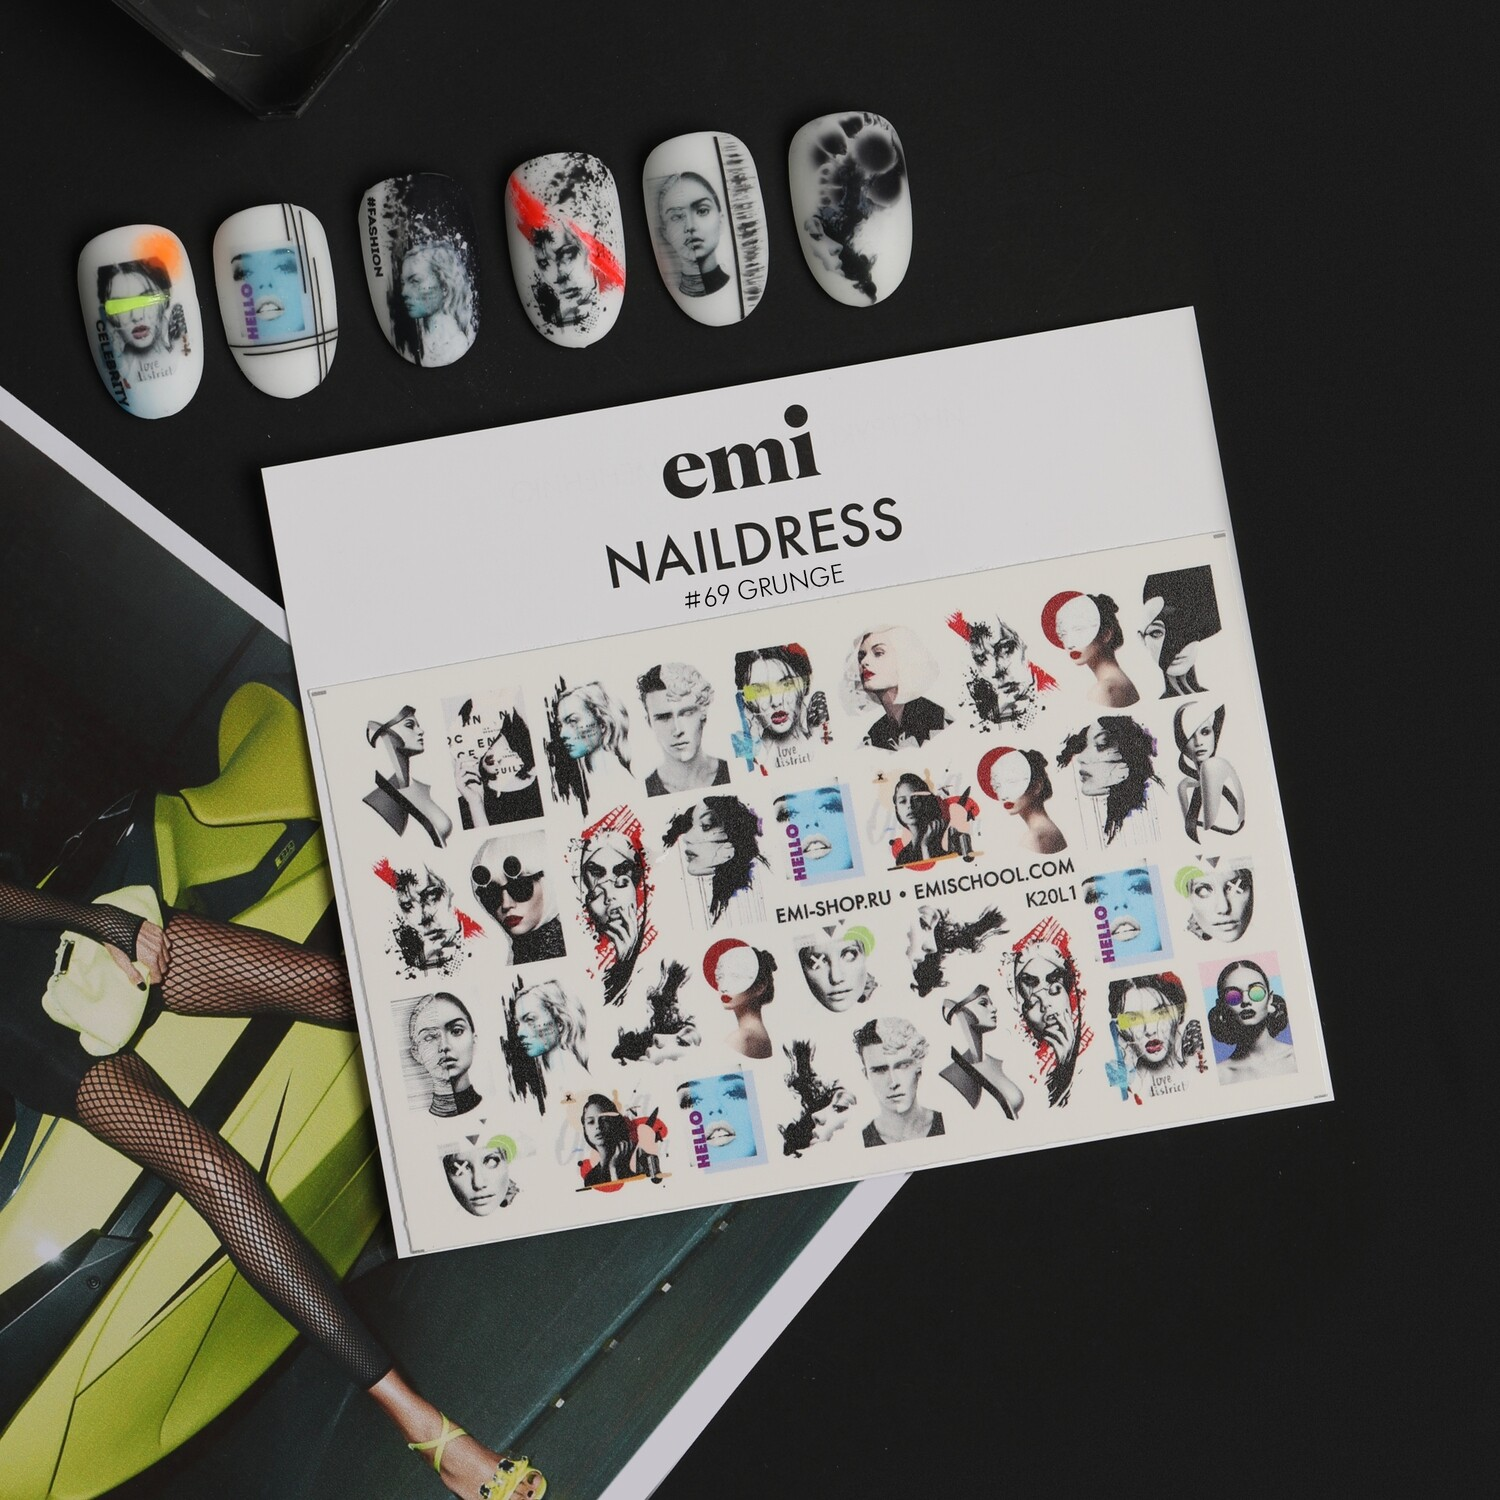 Naildress Slider Design #69 Grunge